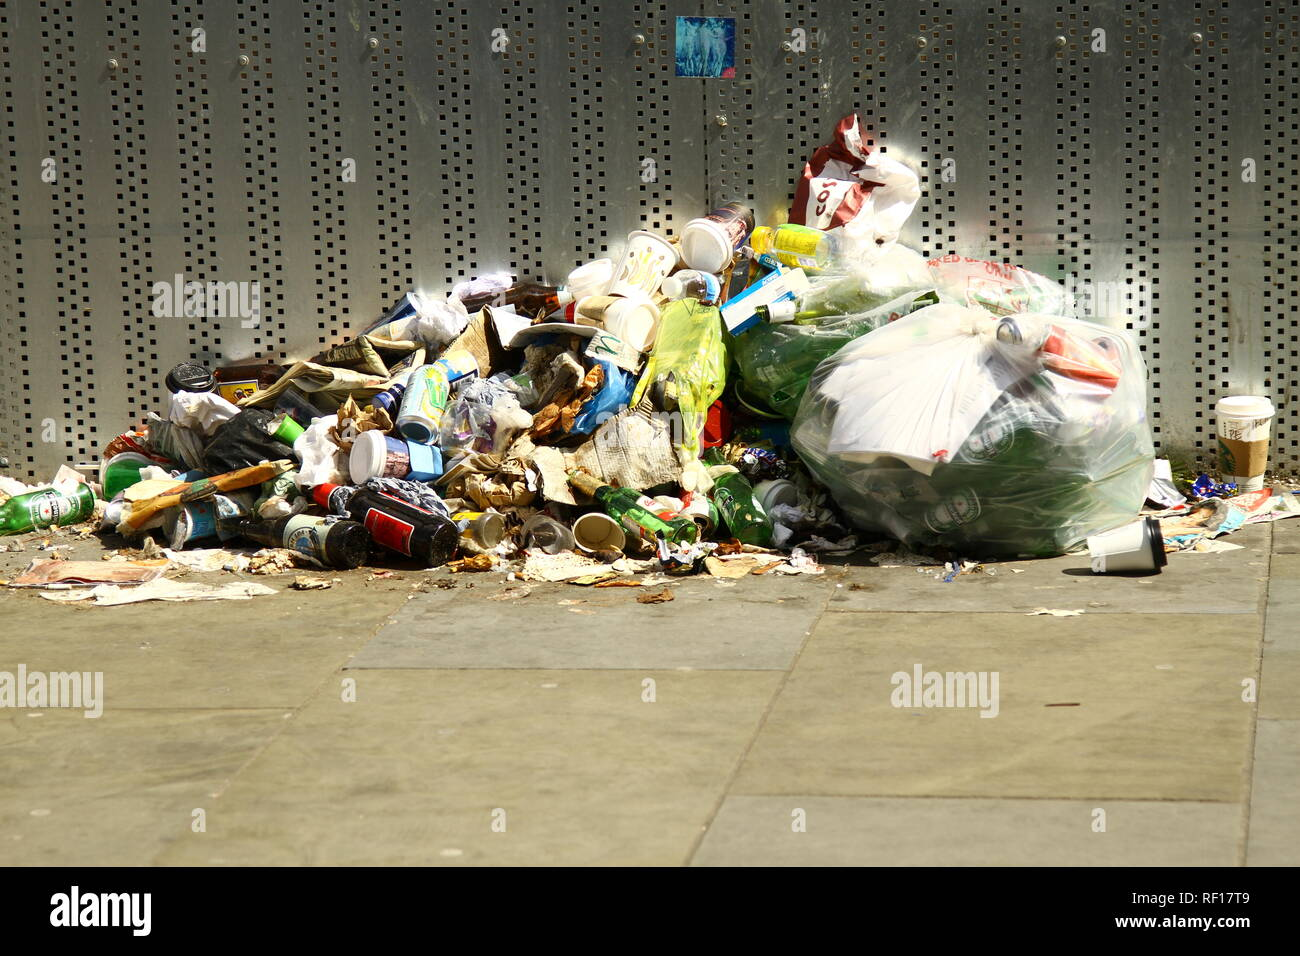 Pollution. General rubbish dumped on the concrete bed of a part of the Los Angeles river, California, USA. Anthropocene age. PLASTIC POLLUTION. - Stock Image